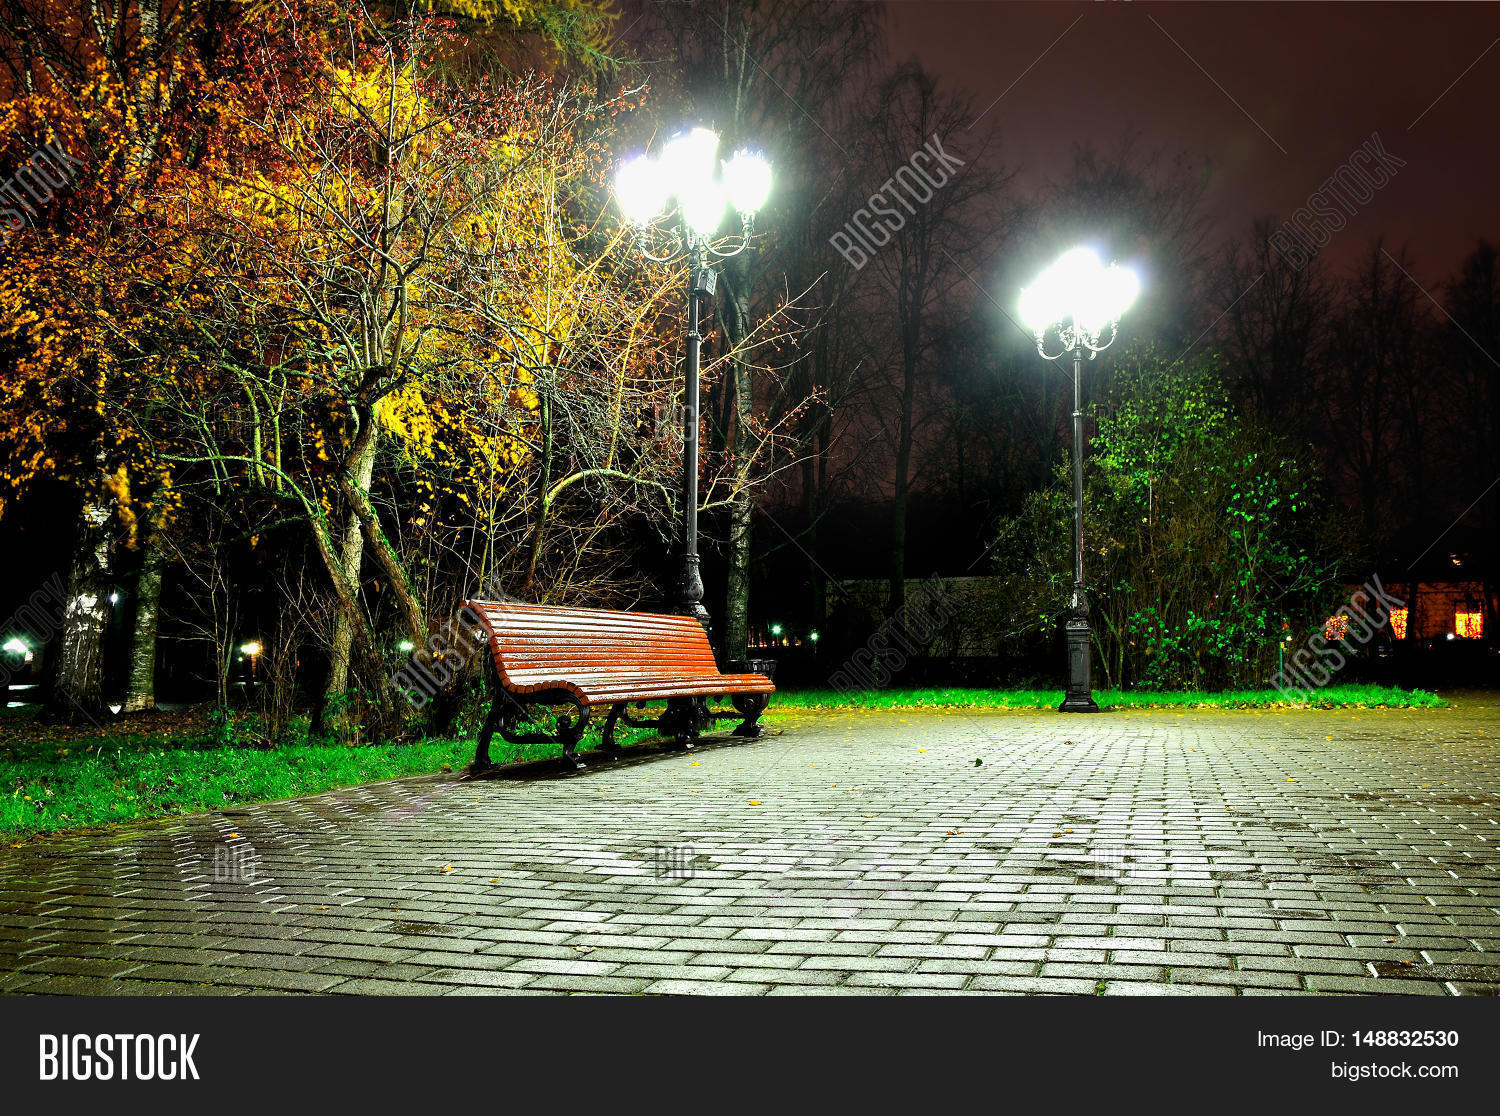 Autumn rainy night with lonely bench under yellowed autumn ...